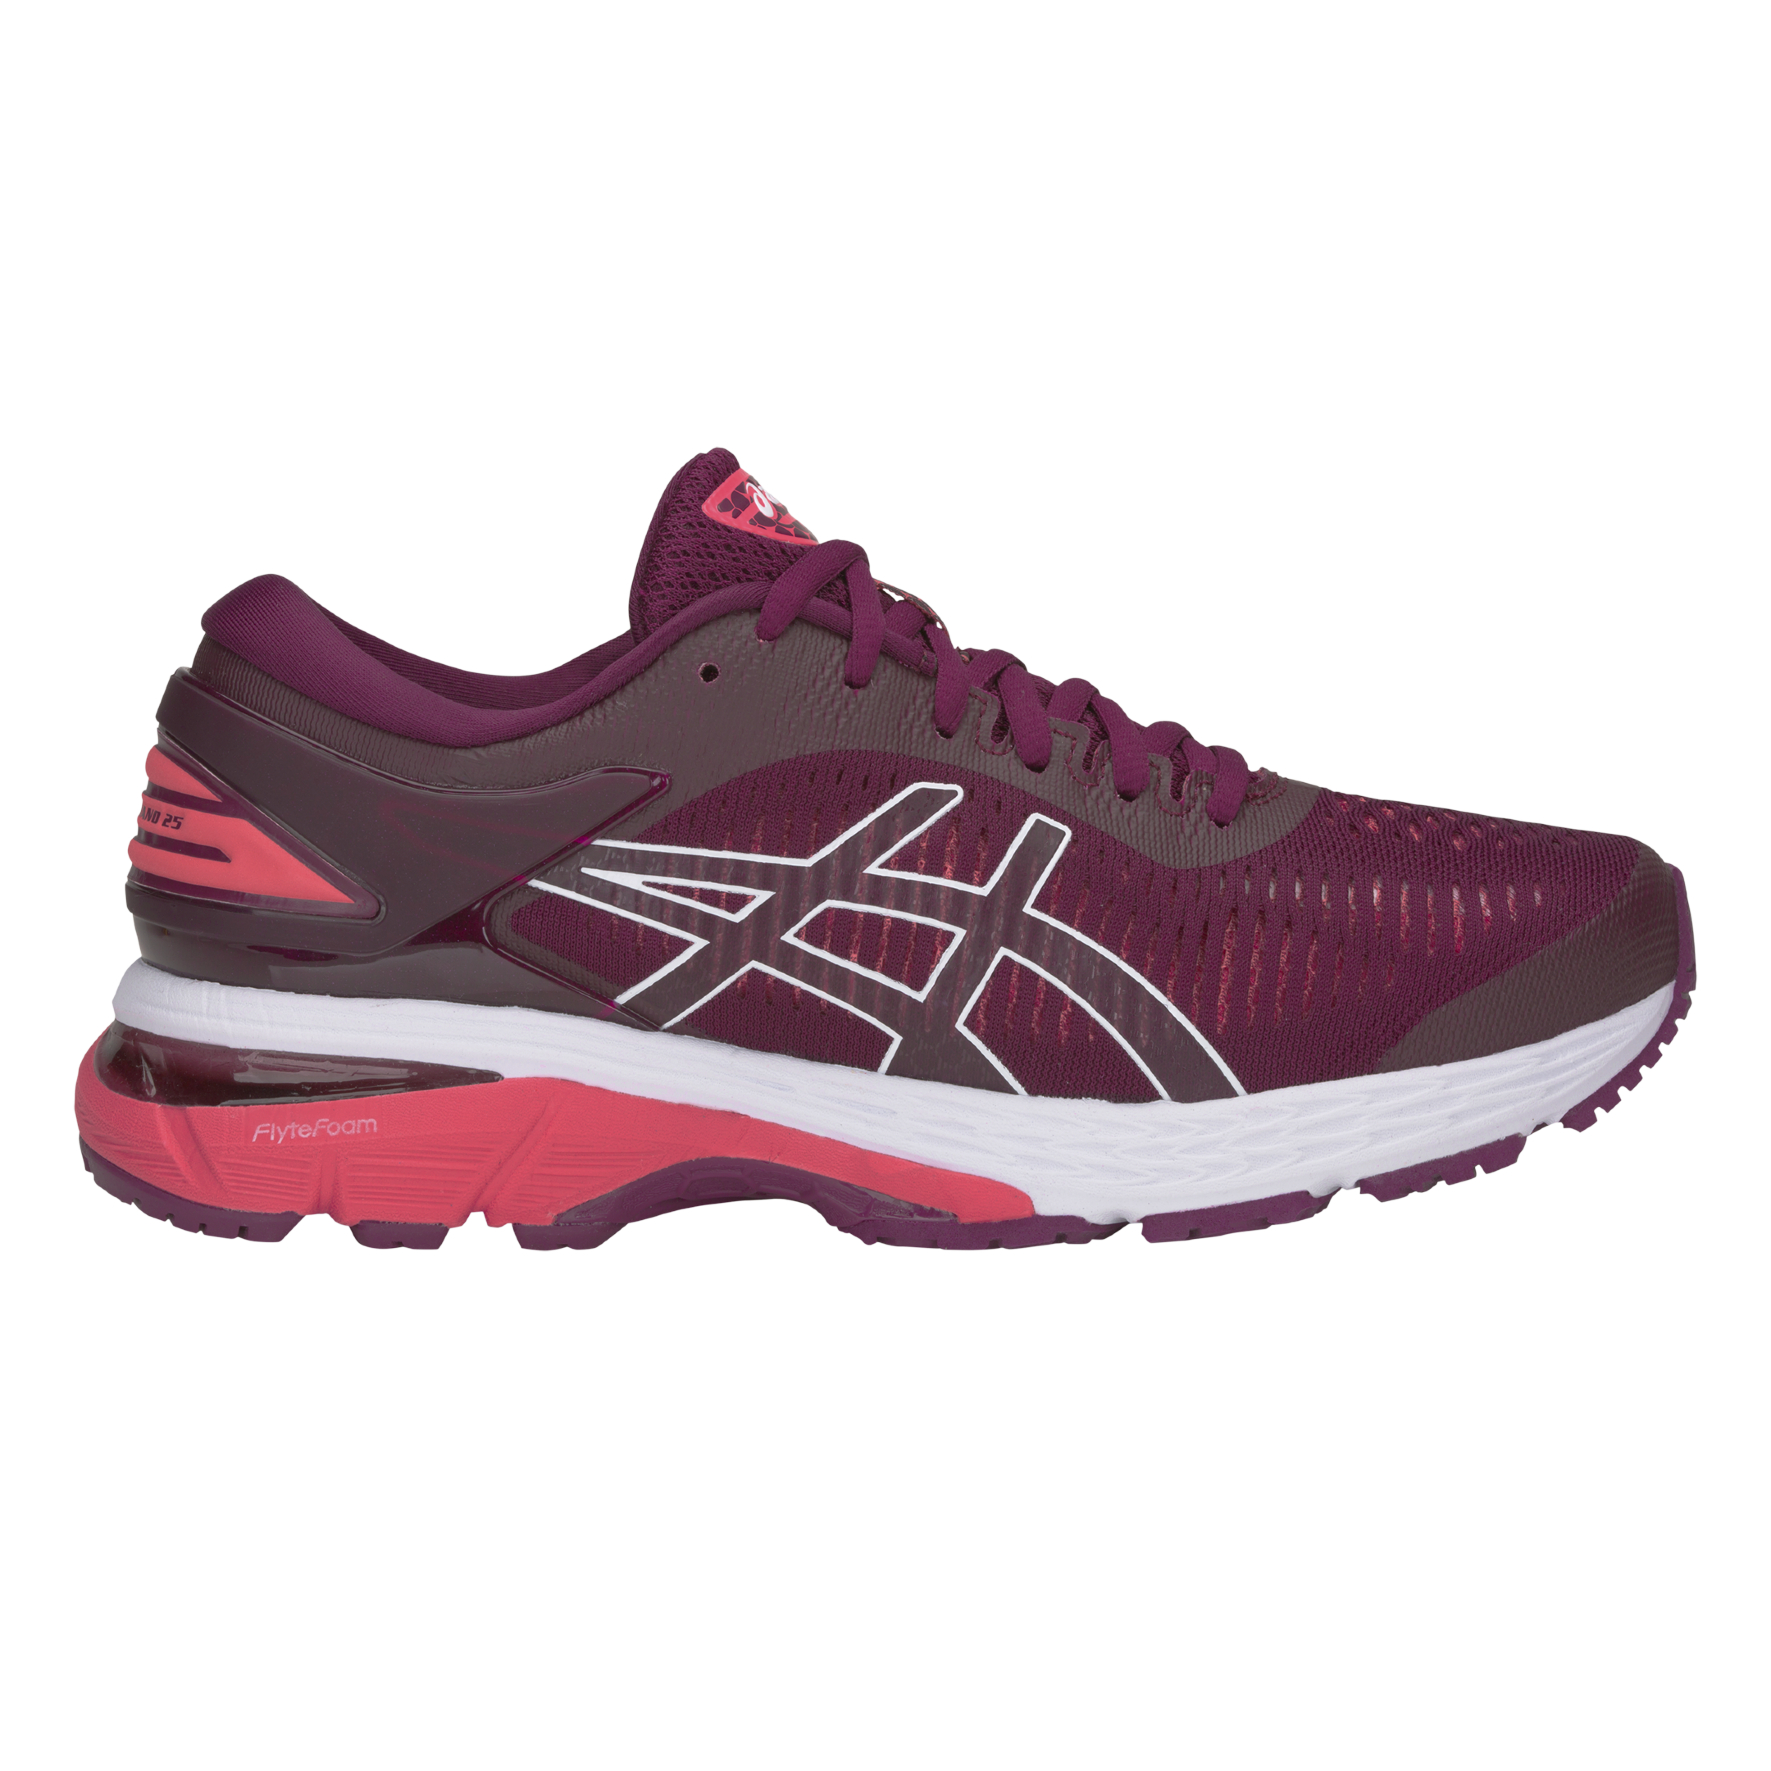 the latest fb4c6 89ba9 Asics Women's Kayano 25 Shoes